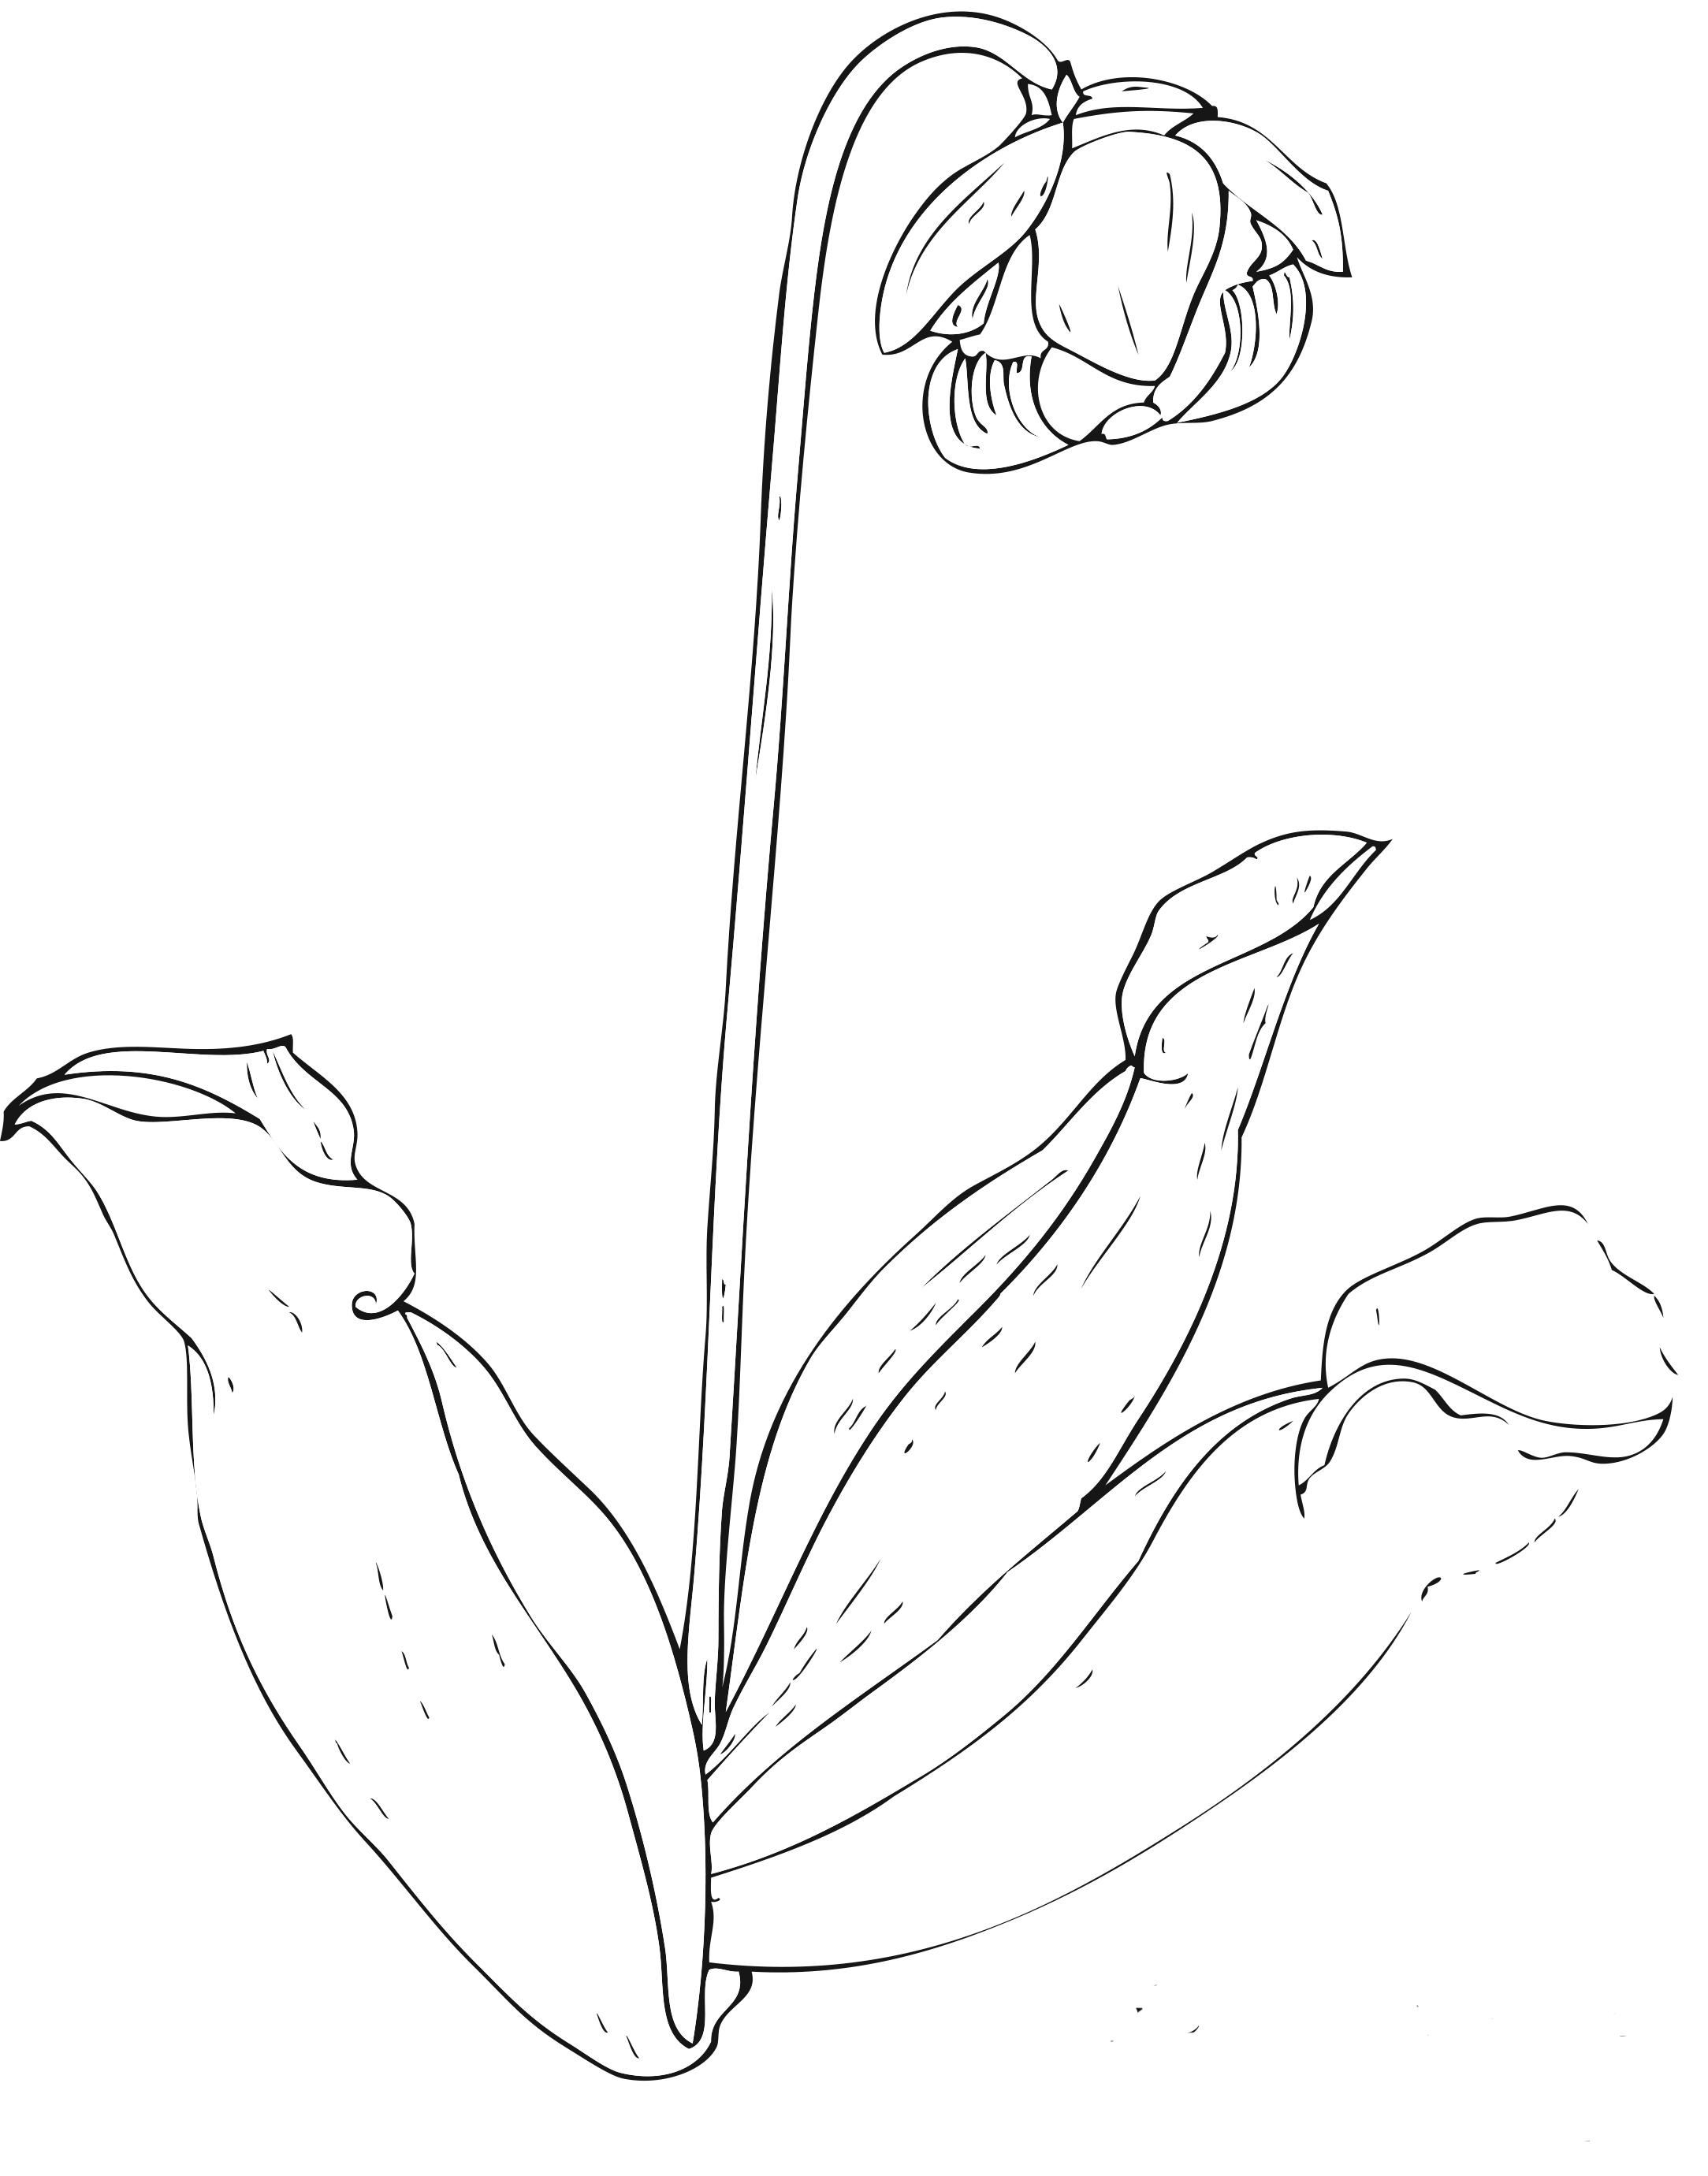 childrens coloring pages flowers - photo#43